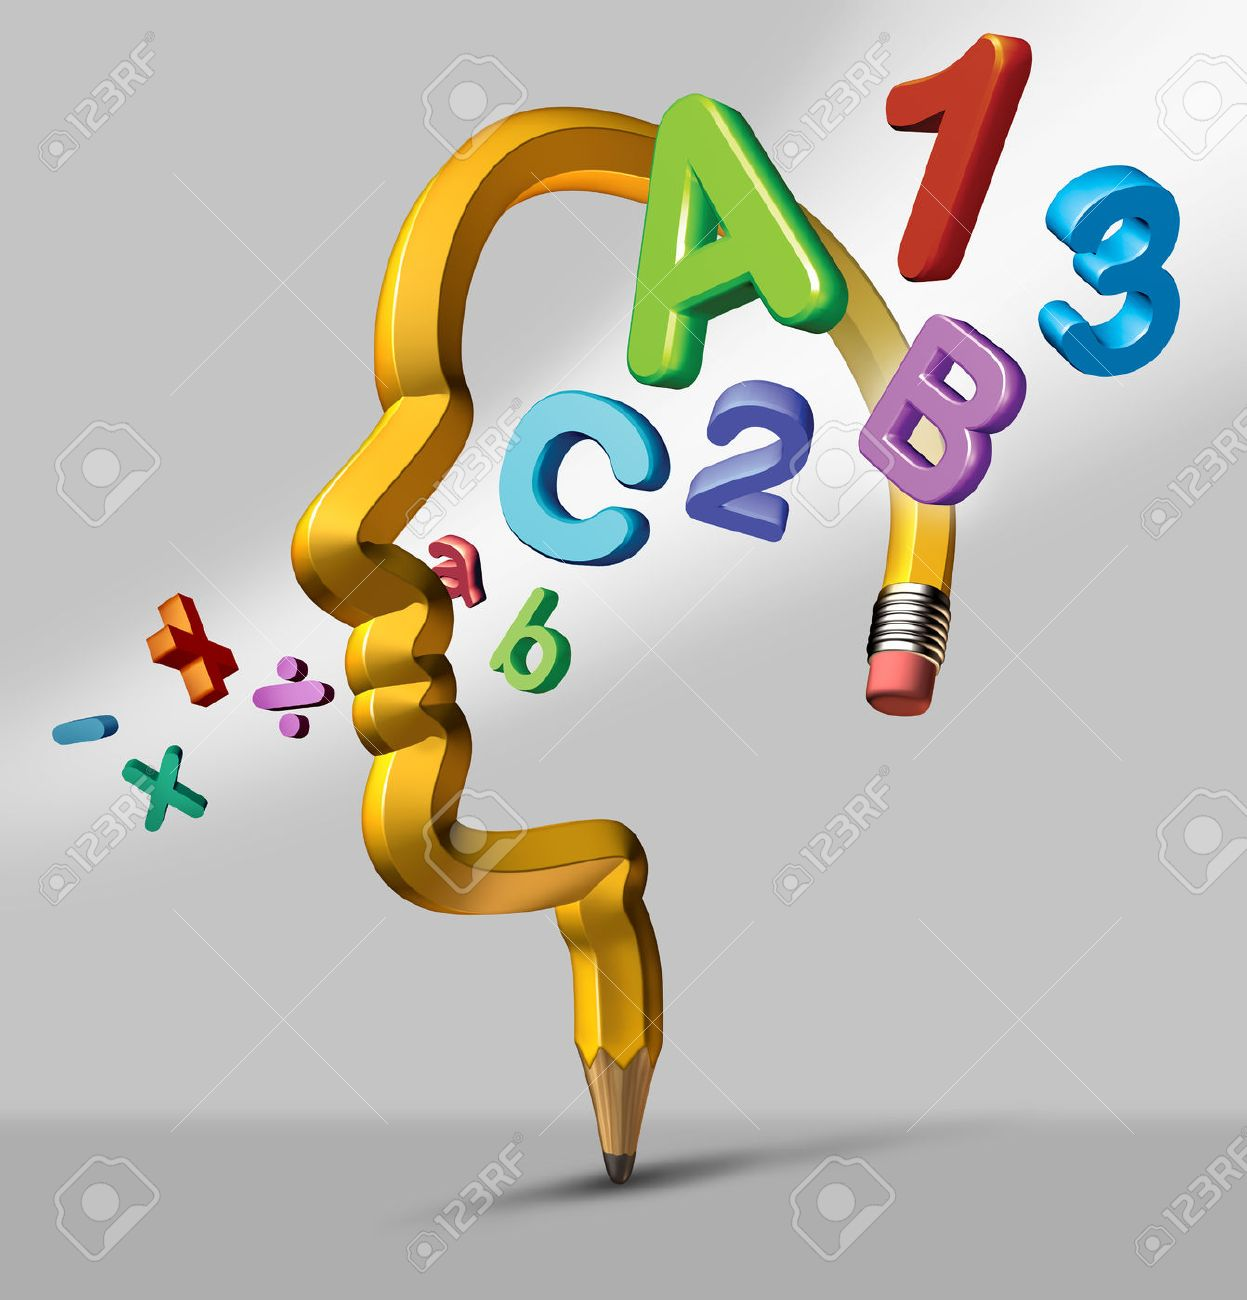 Learning and education school concept with a yellow pencil in the shape of a human head with reading and math symbols flowing through the brain area as an icon of creative intellligent development and student achievement Stock Photo - 24467713